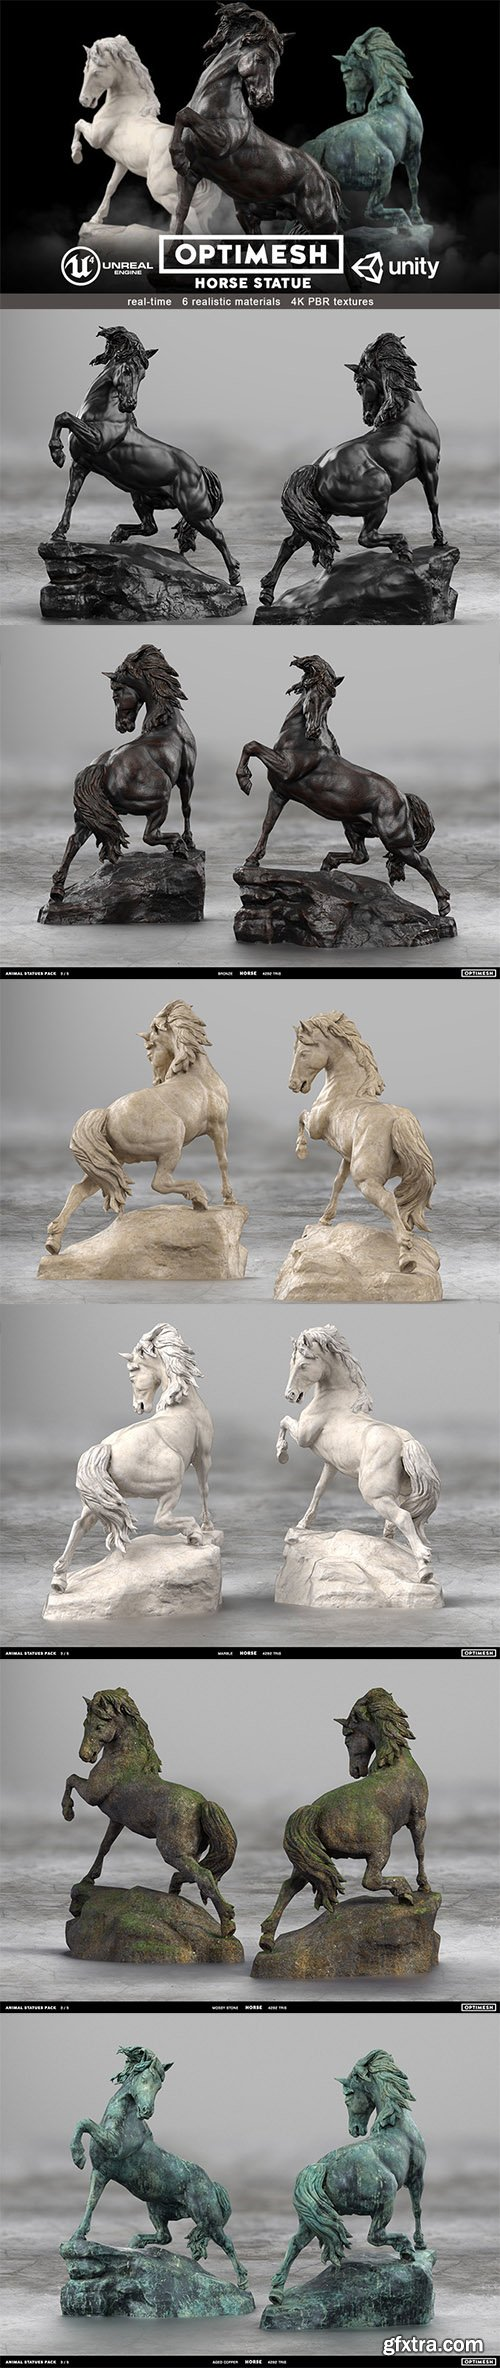 Cgtrader - Horse Statue - 3D PBR model Low-poly 3D model